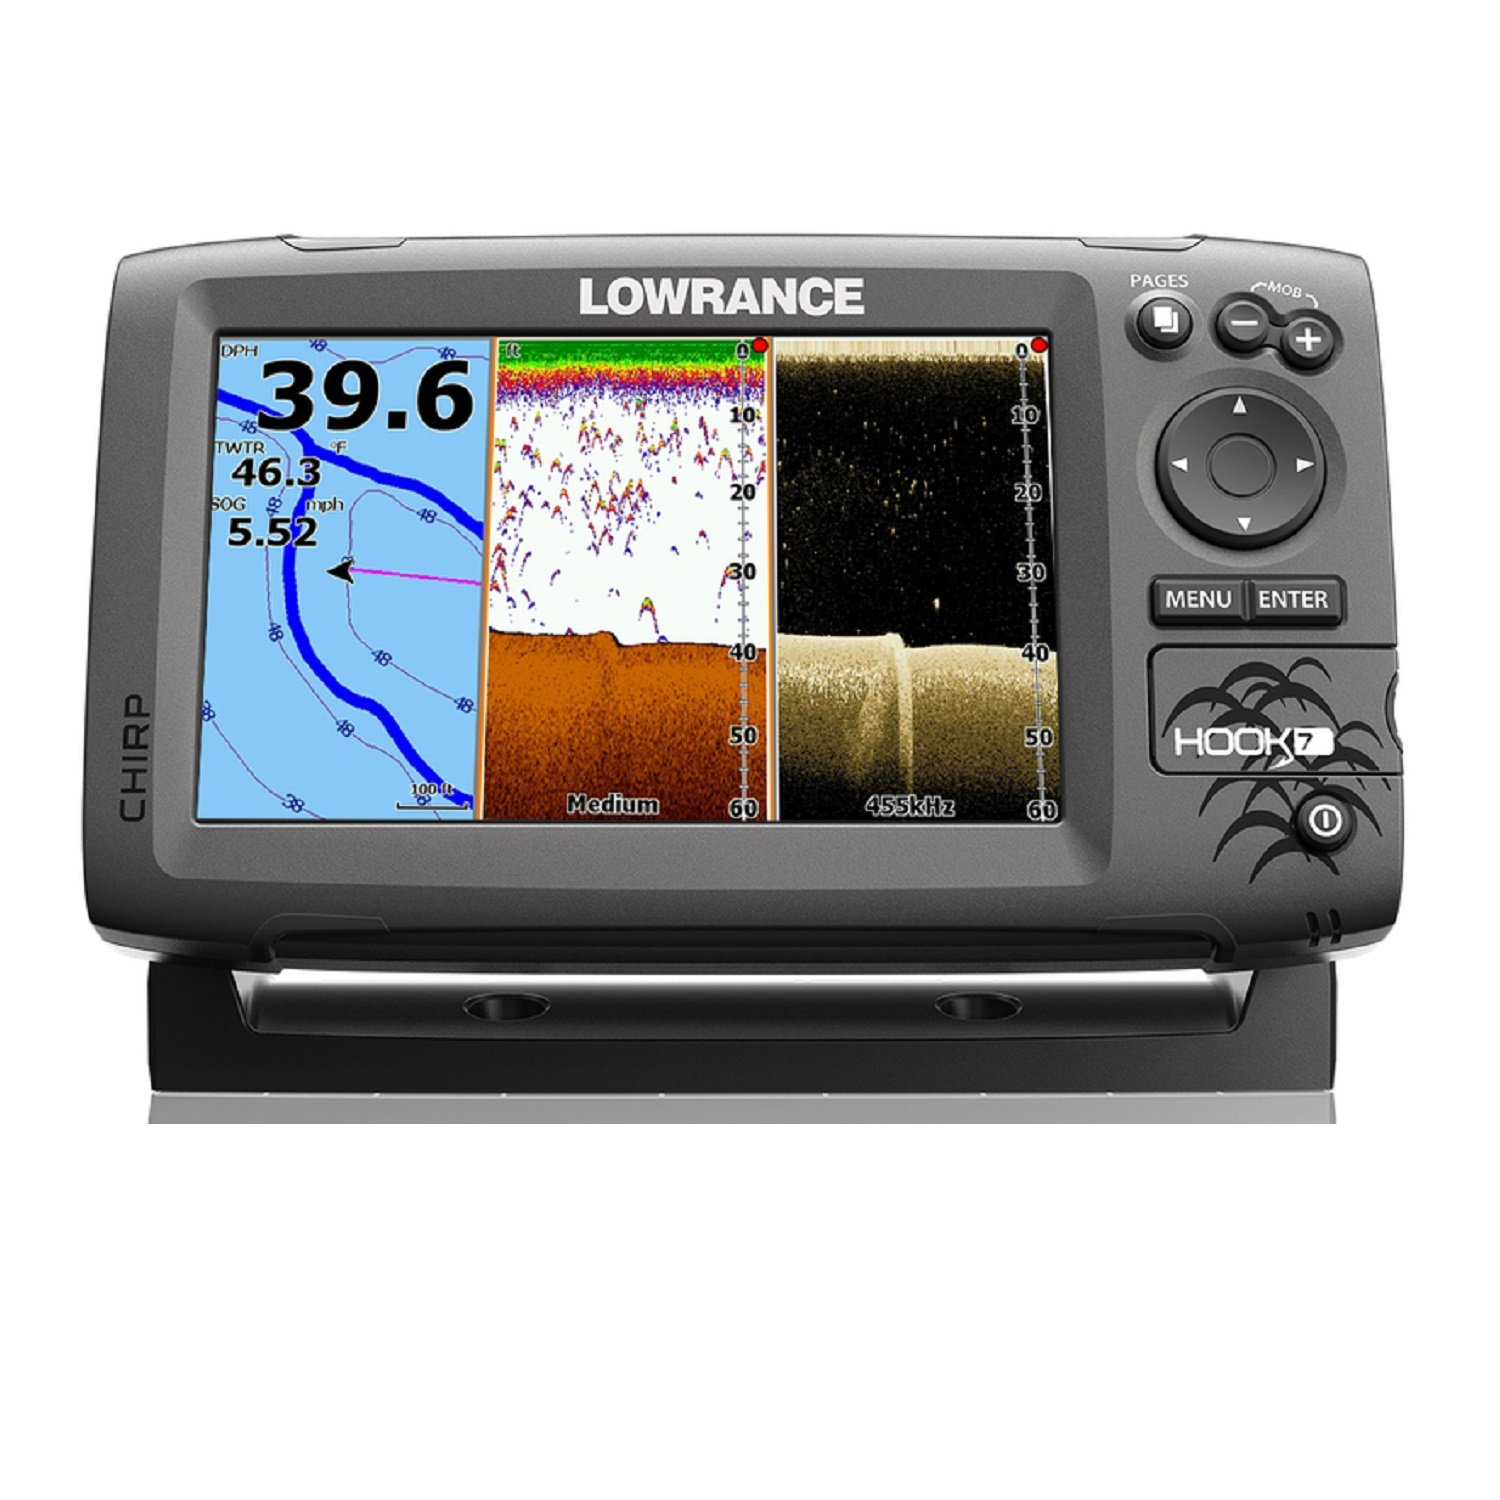 Lowrance 000-12664-002 Navico Hook 7 with Card & Cover Mid/High Down Scan, by Lowrance